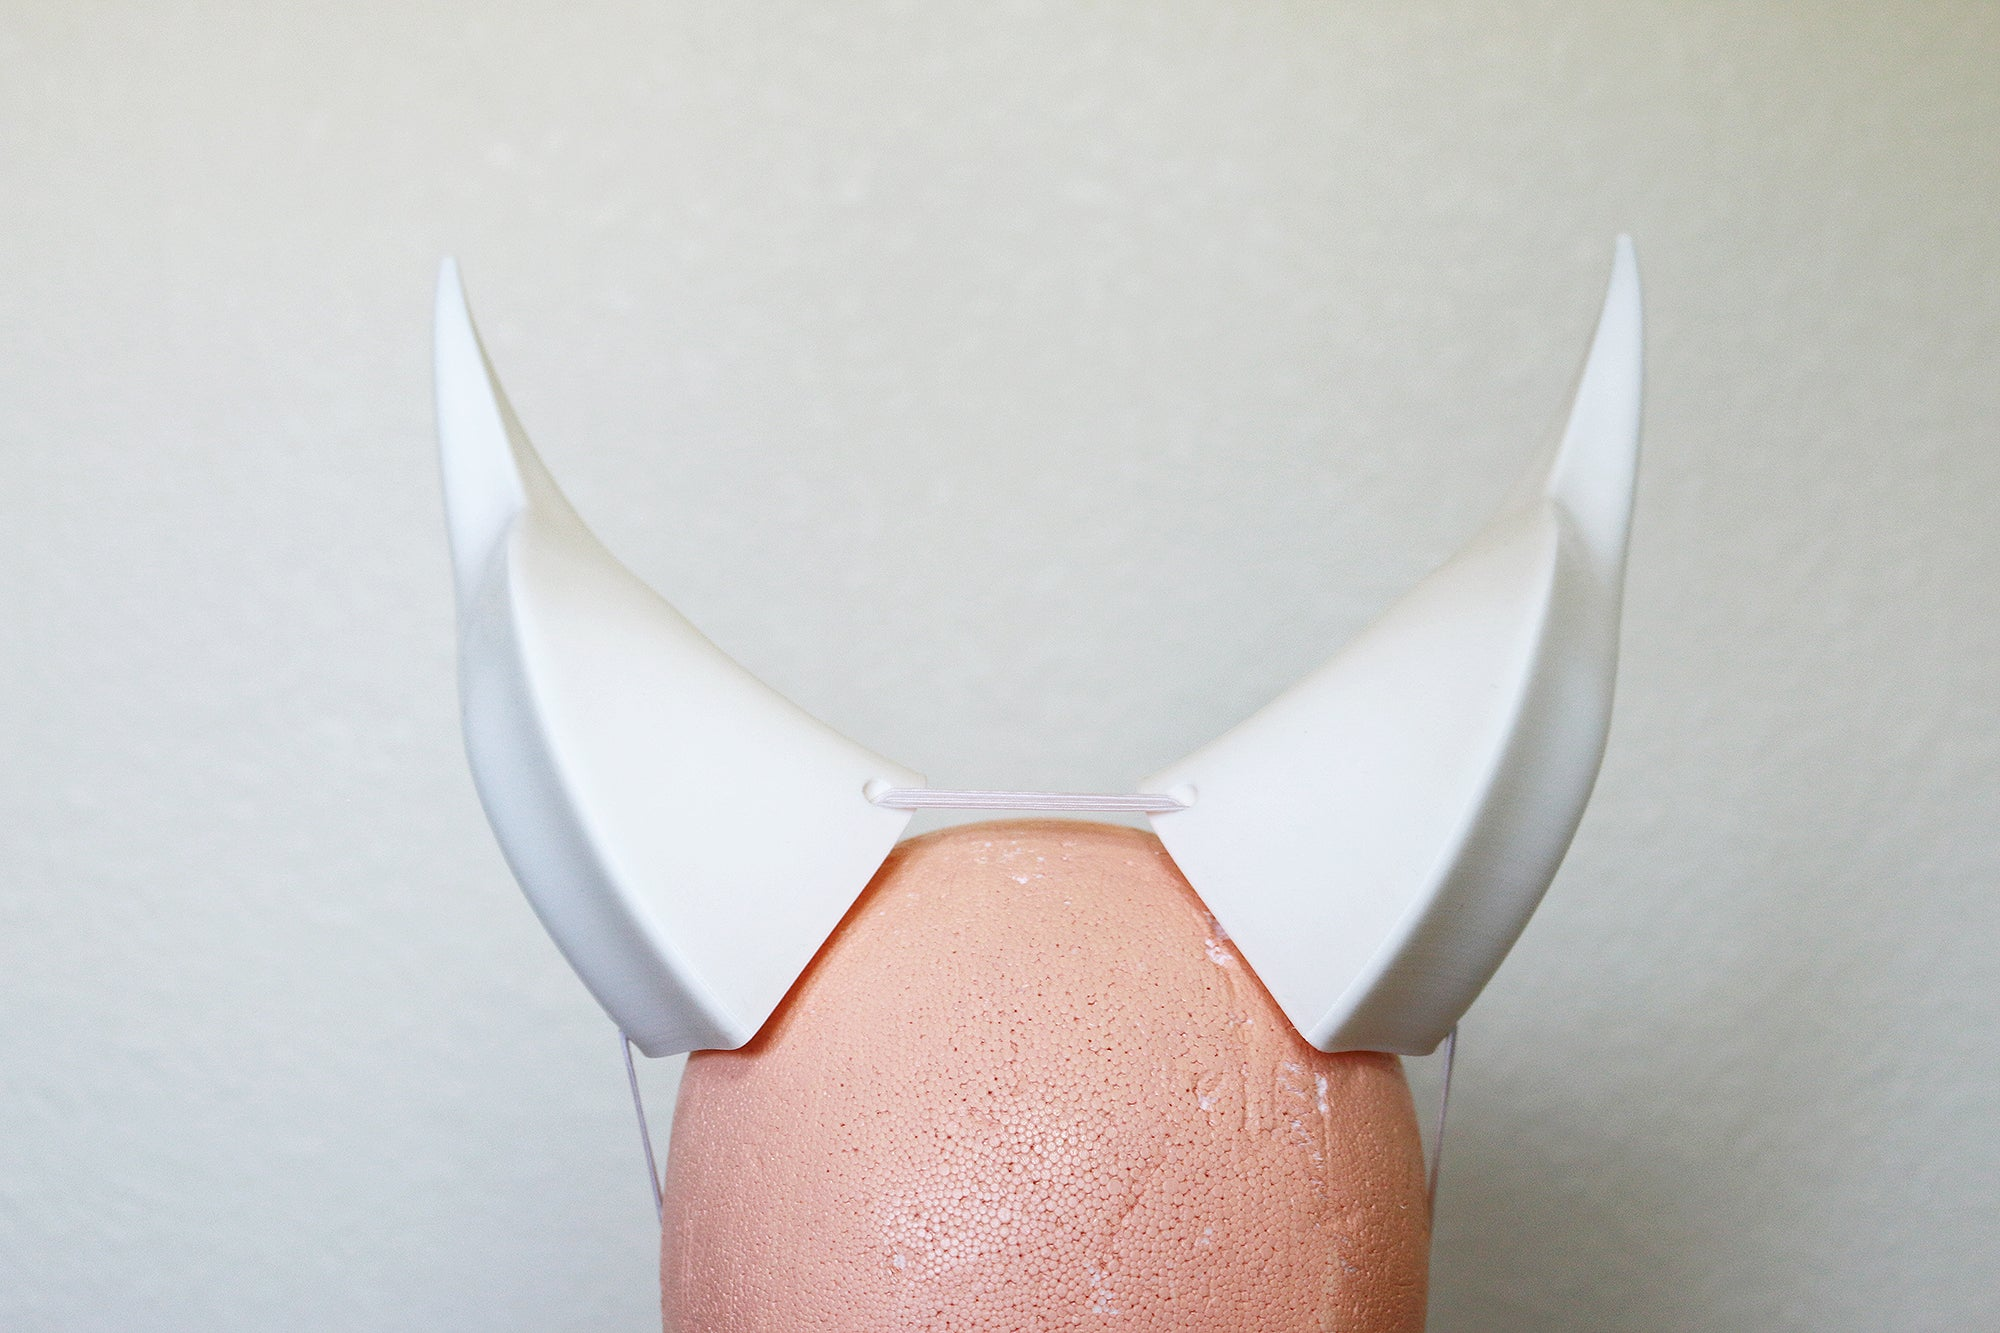 Large Beast 3D Printed Costume Horns (Multiple Colors Available)